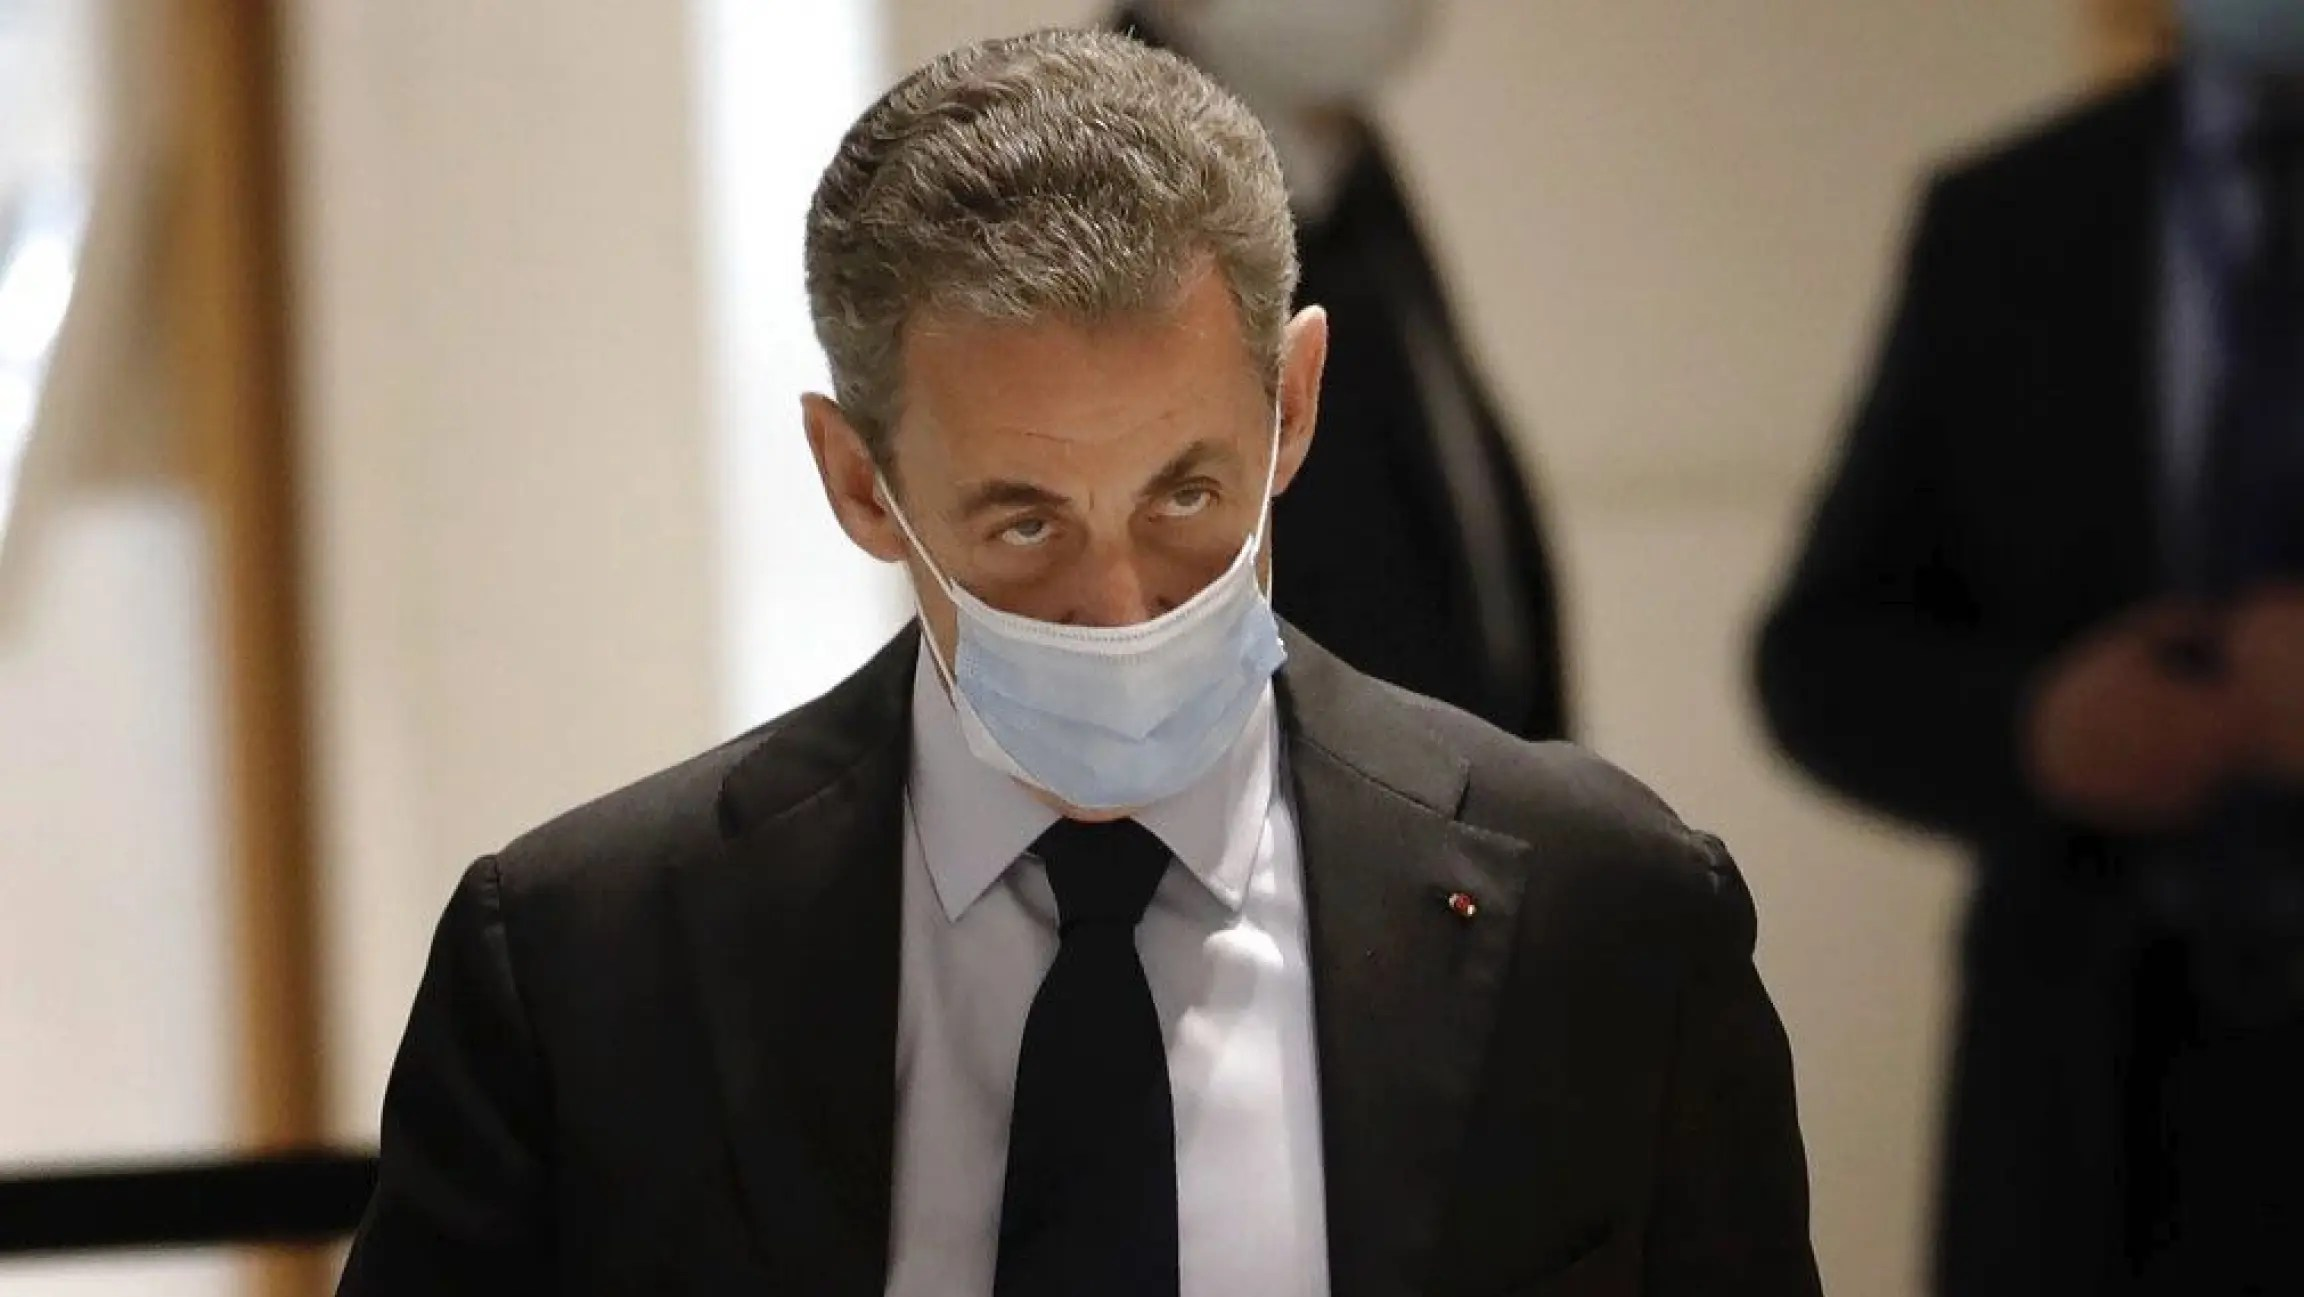 sarkozy - photo #24